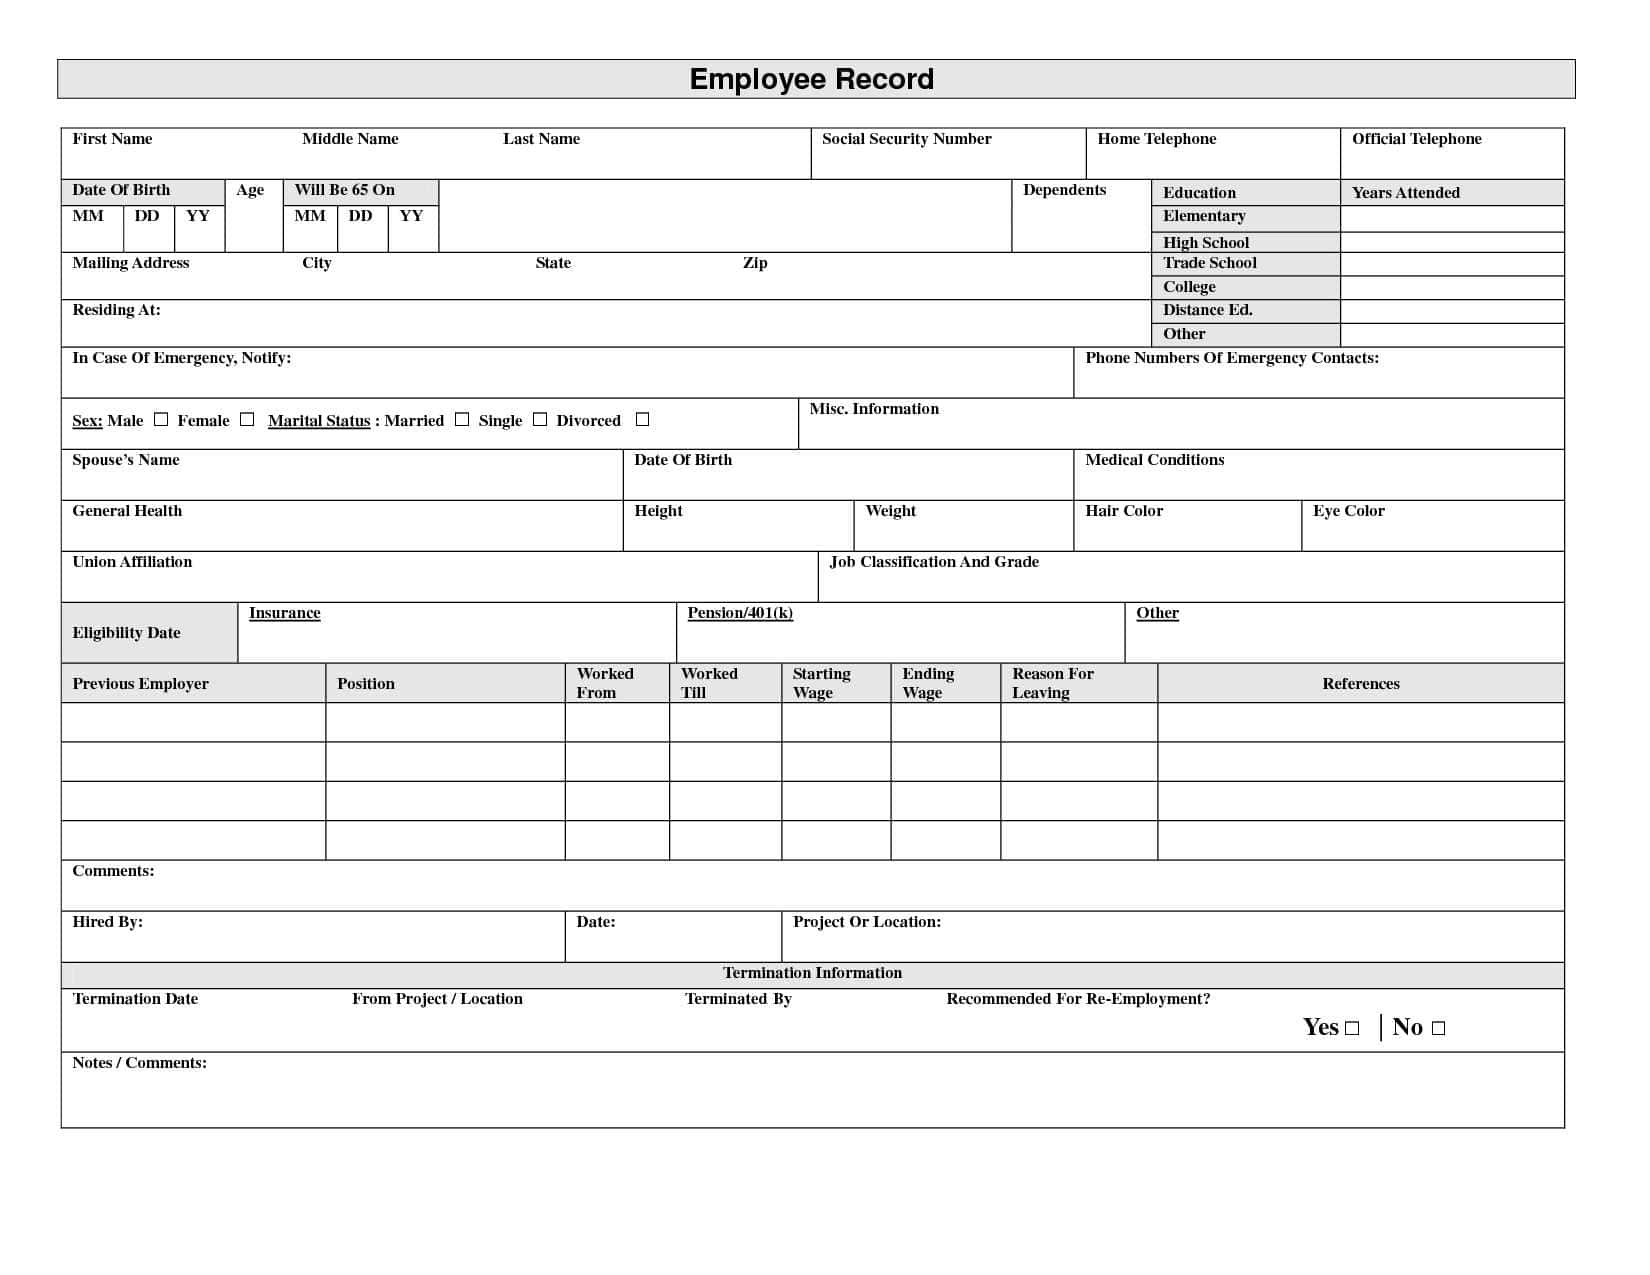 Free Printable Forms For Organizing And Agreement Contract Templates - Free Printable Forms For Organizing